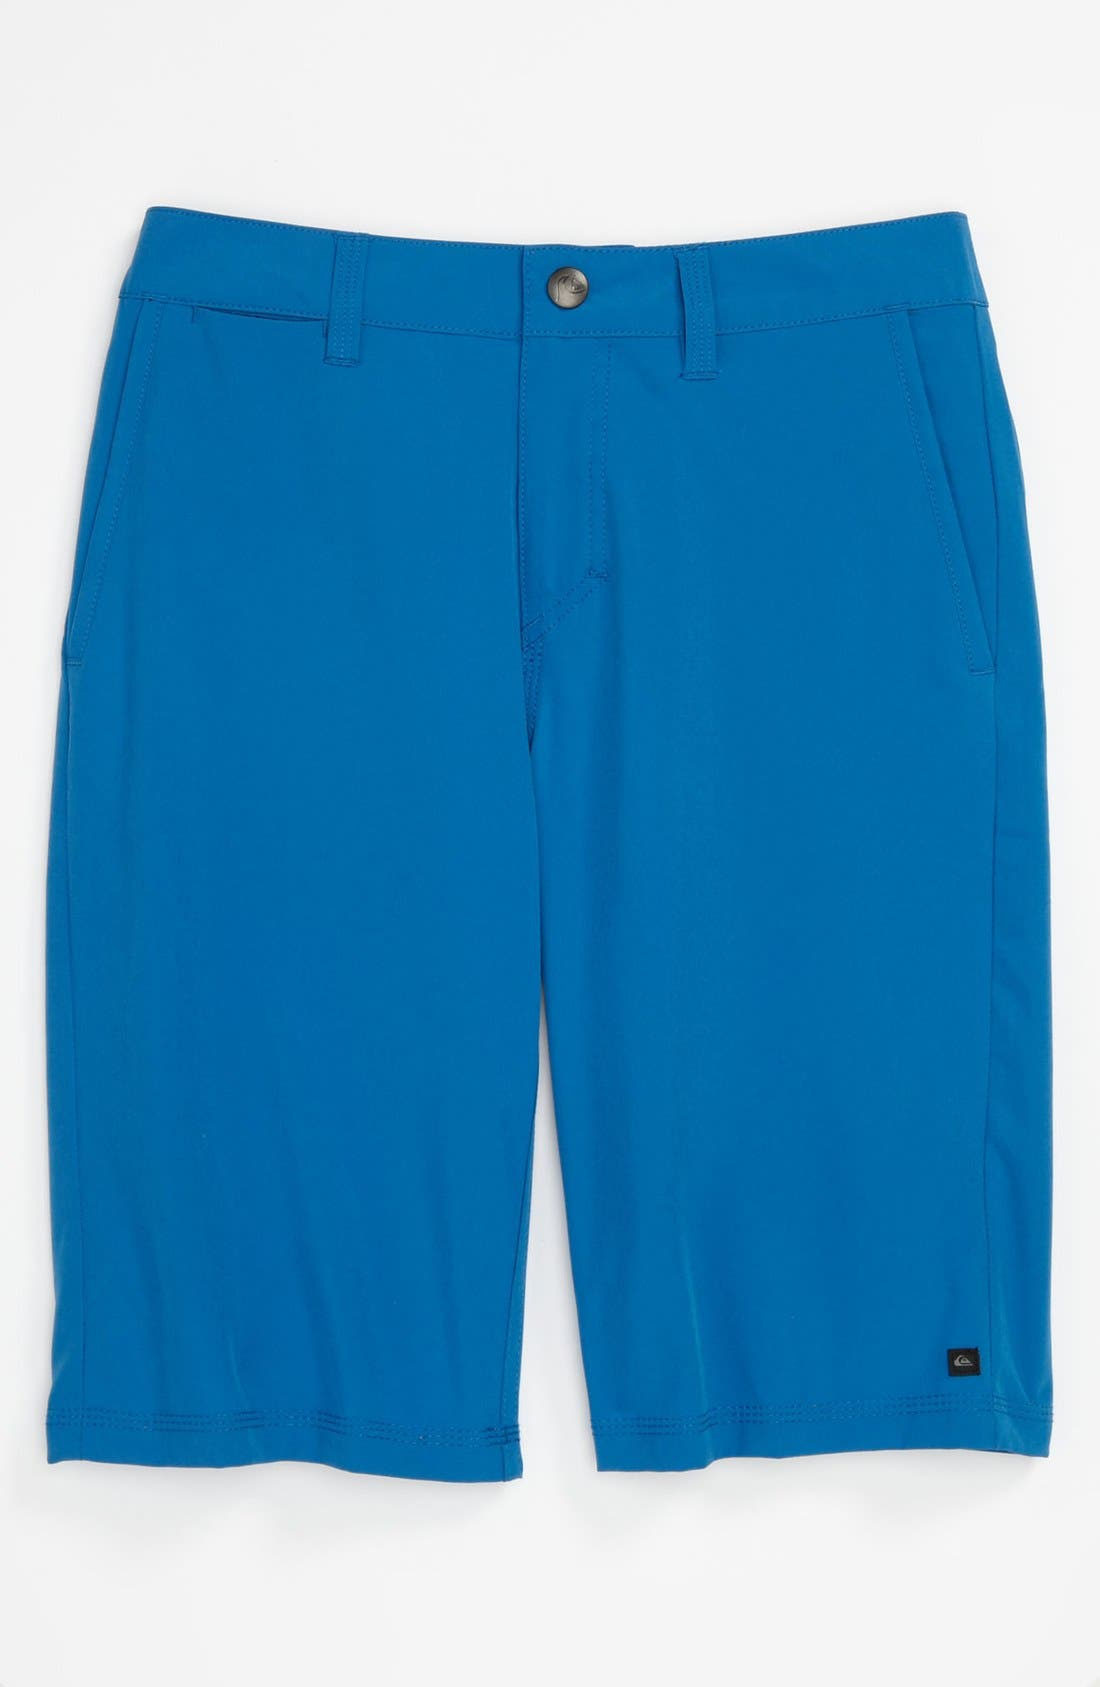 Alternate Image 1 Selected - Quiksilver 'F.A.A.' Water Repellent Shorts (Big Boys)